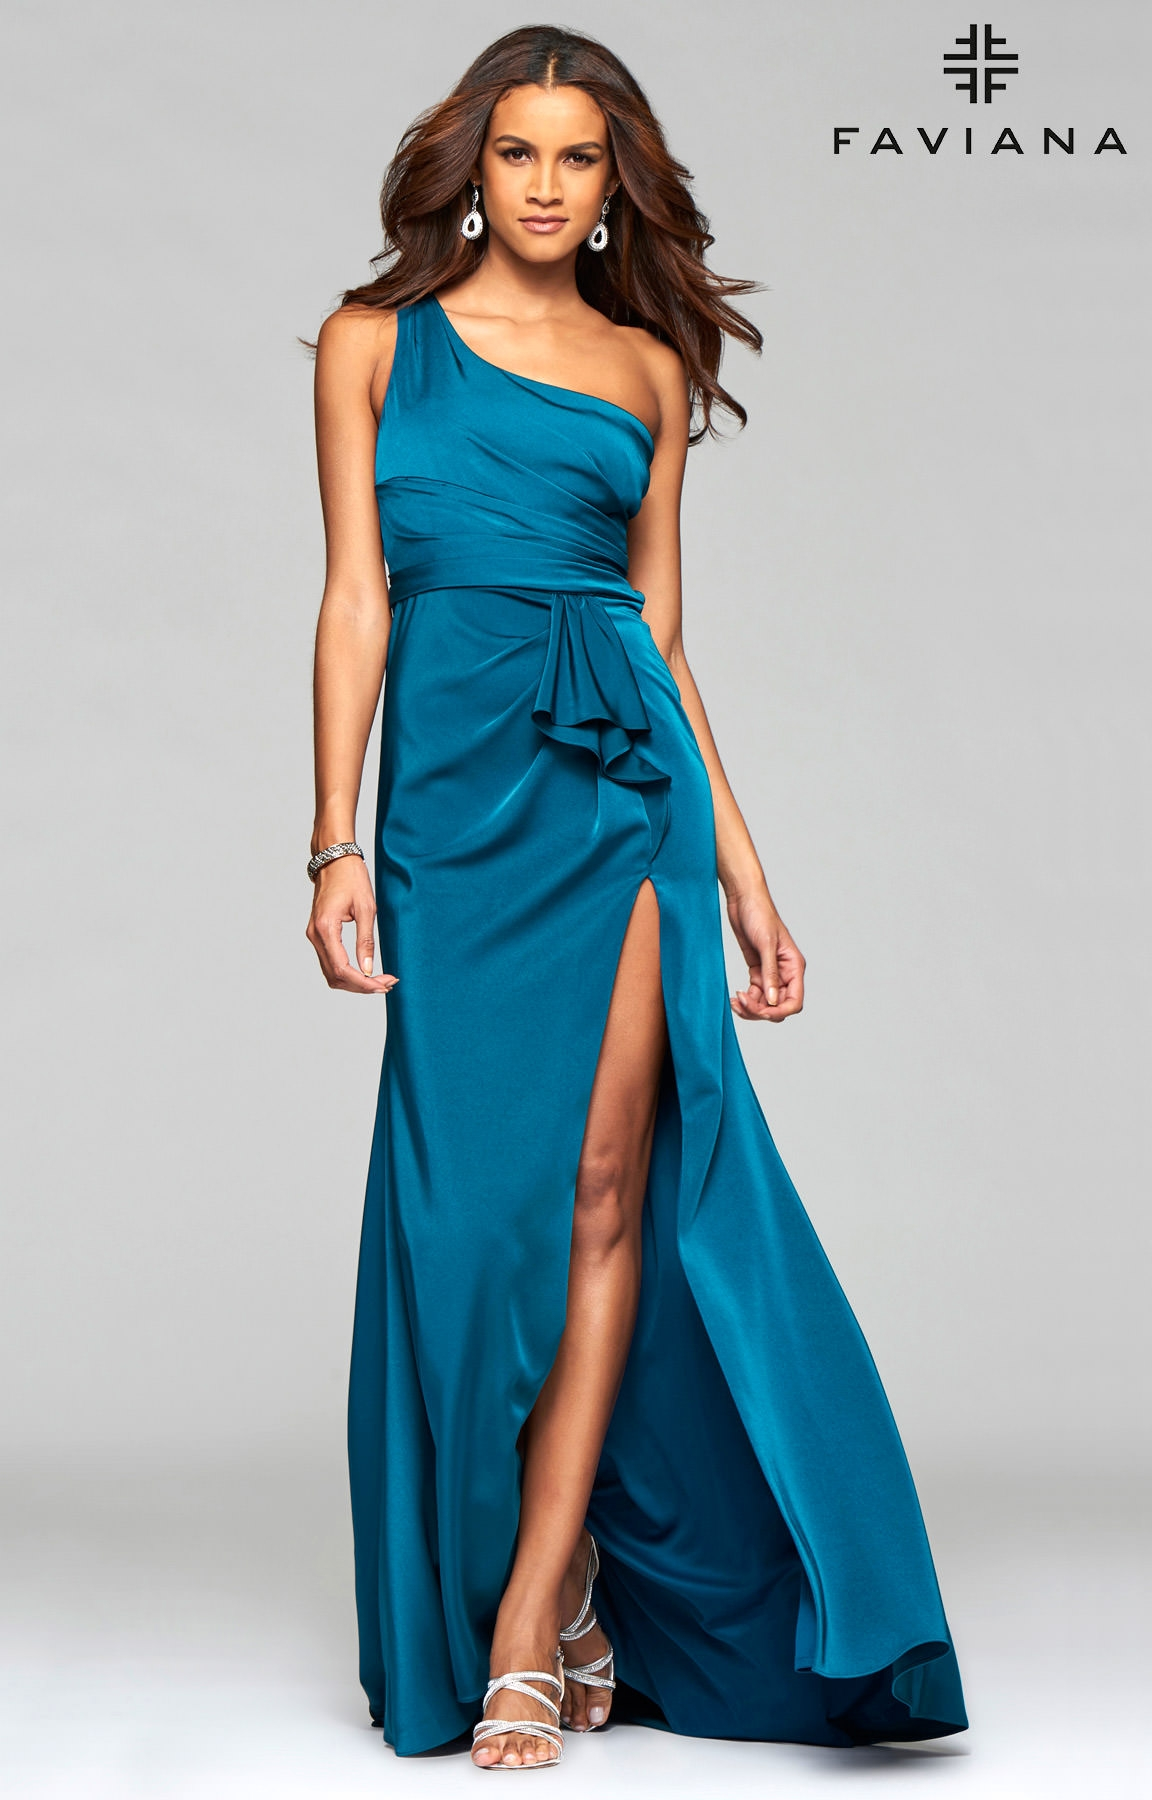 Faviana 7892 - One Shoulder Faille Satin with High Slit Prom Dress